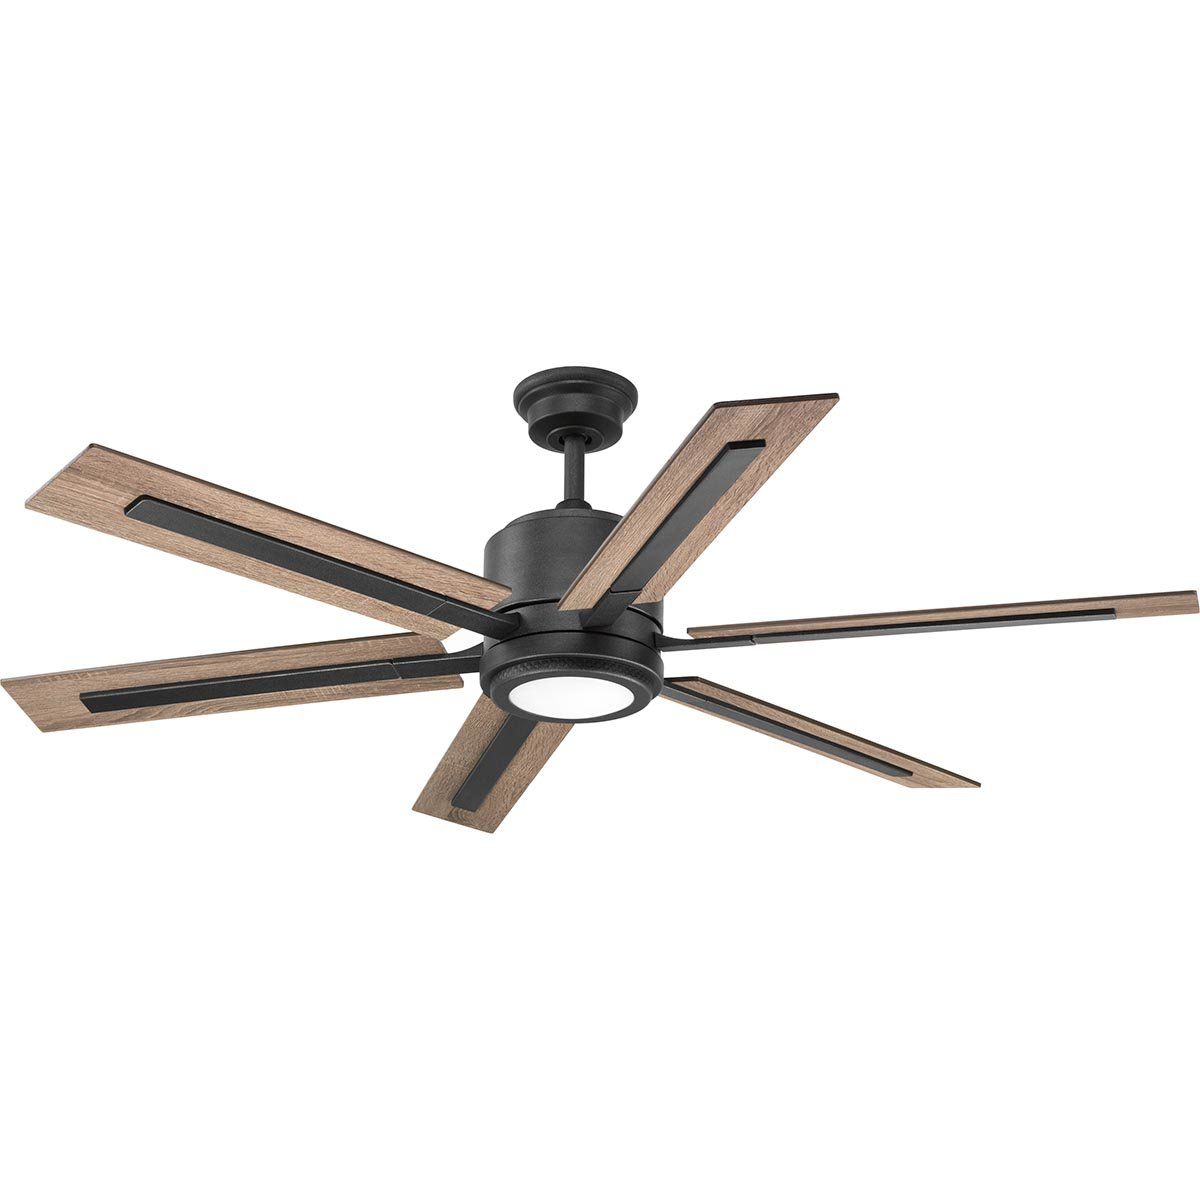 "60"" Lesure 6 Blade Led Ceiling Fan With Remote, Light Kit Included Throughout Trendy Heskett 3 Blade Led Ceiling Fans (View 8 of 20)"